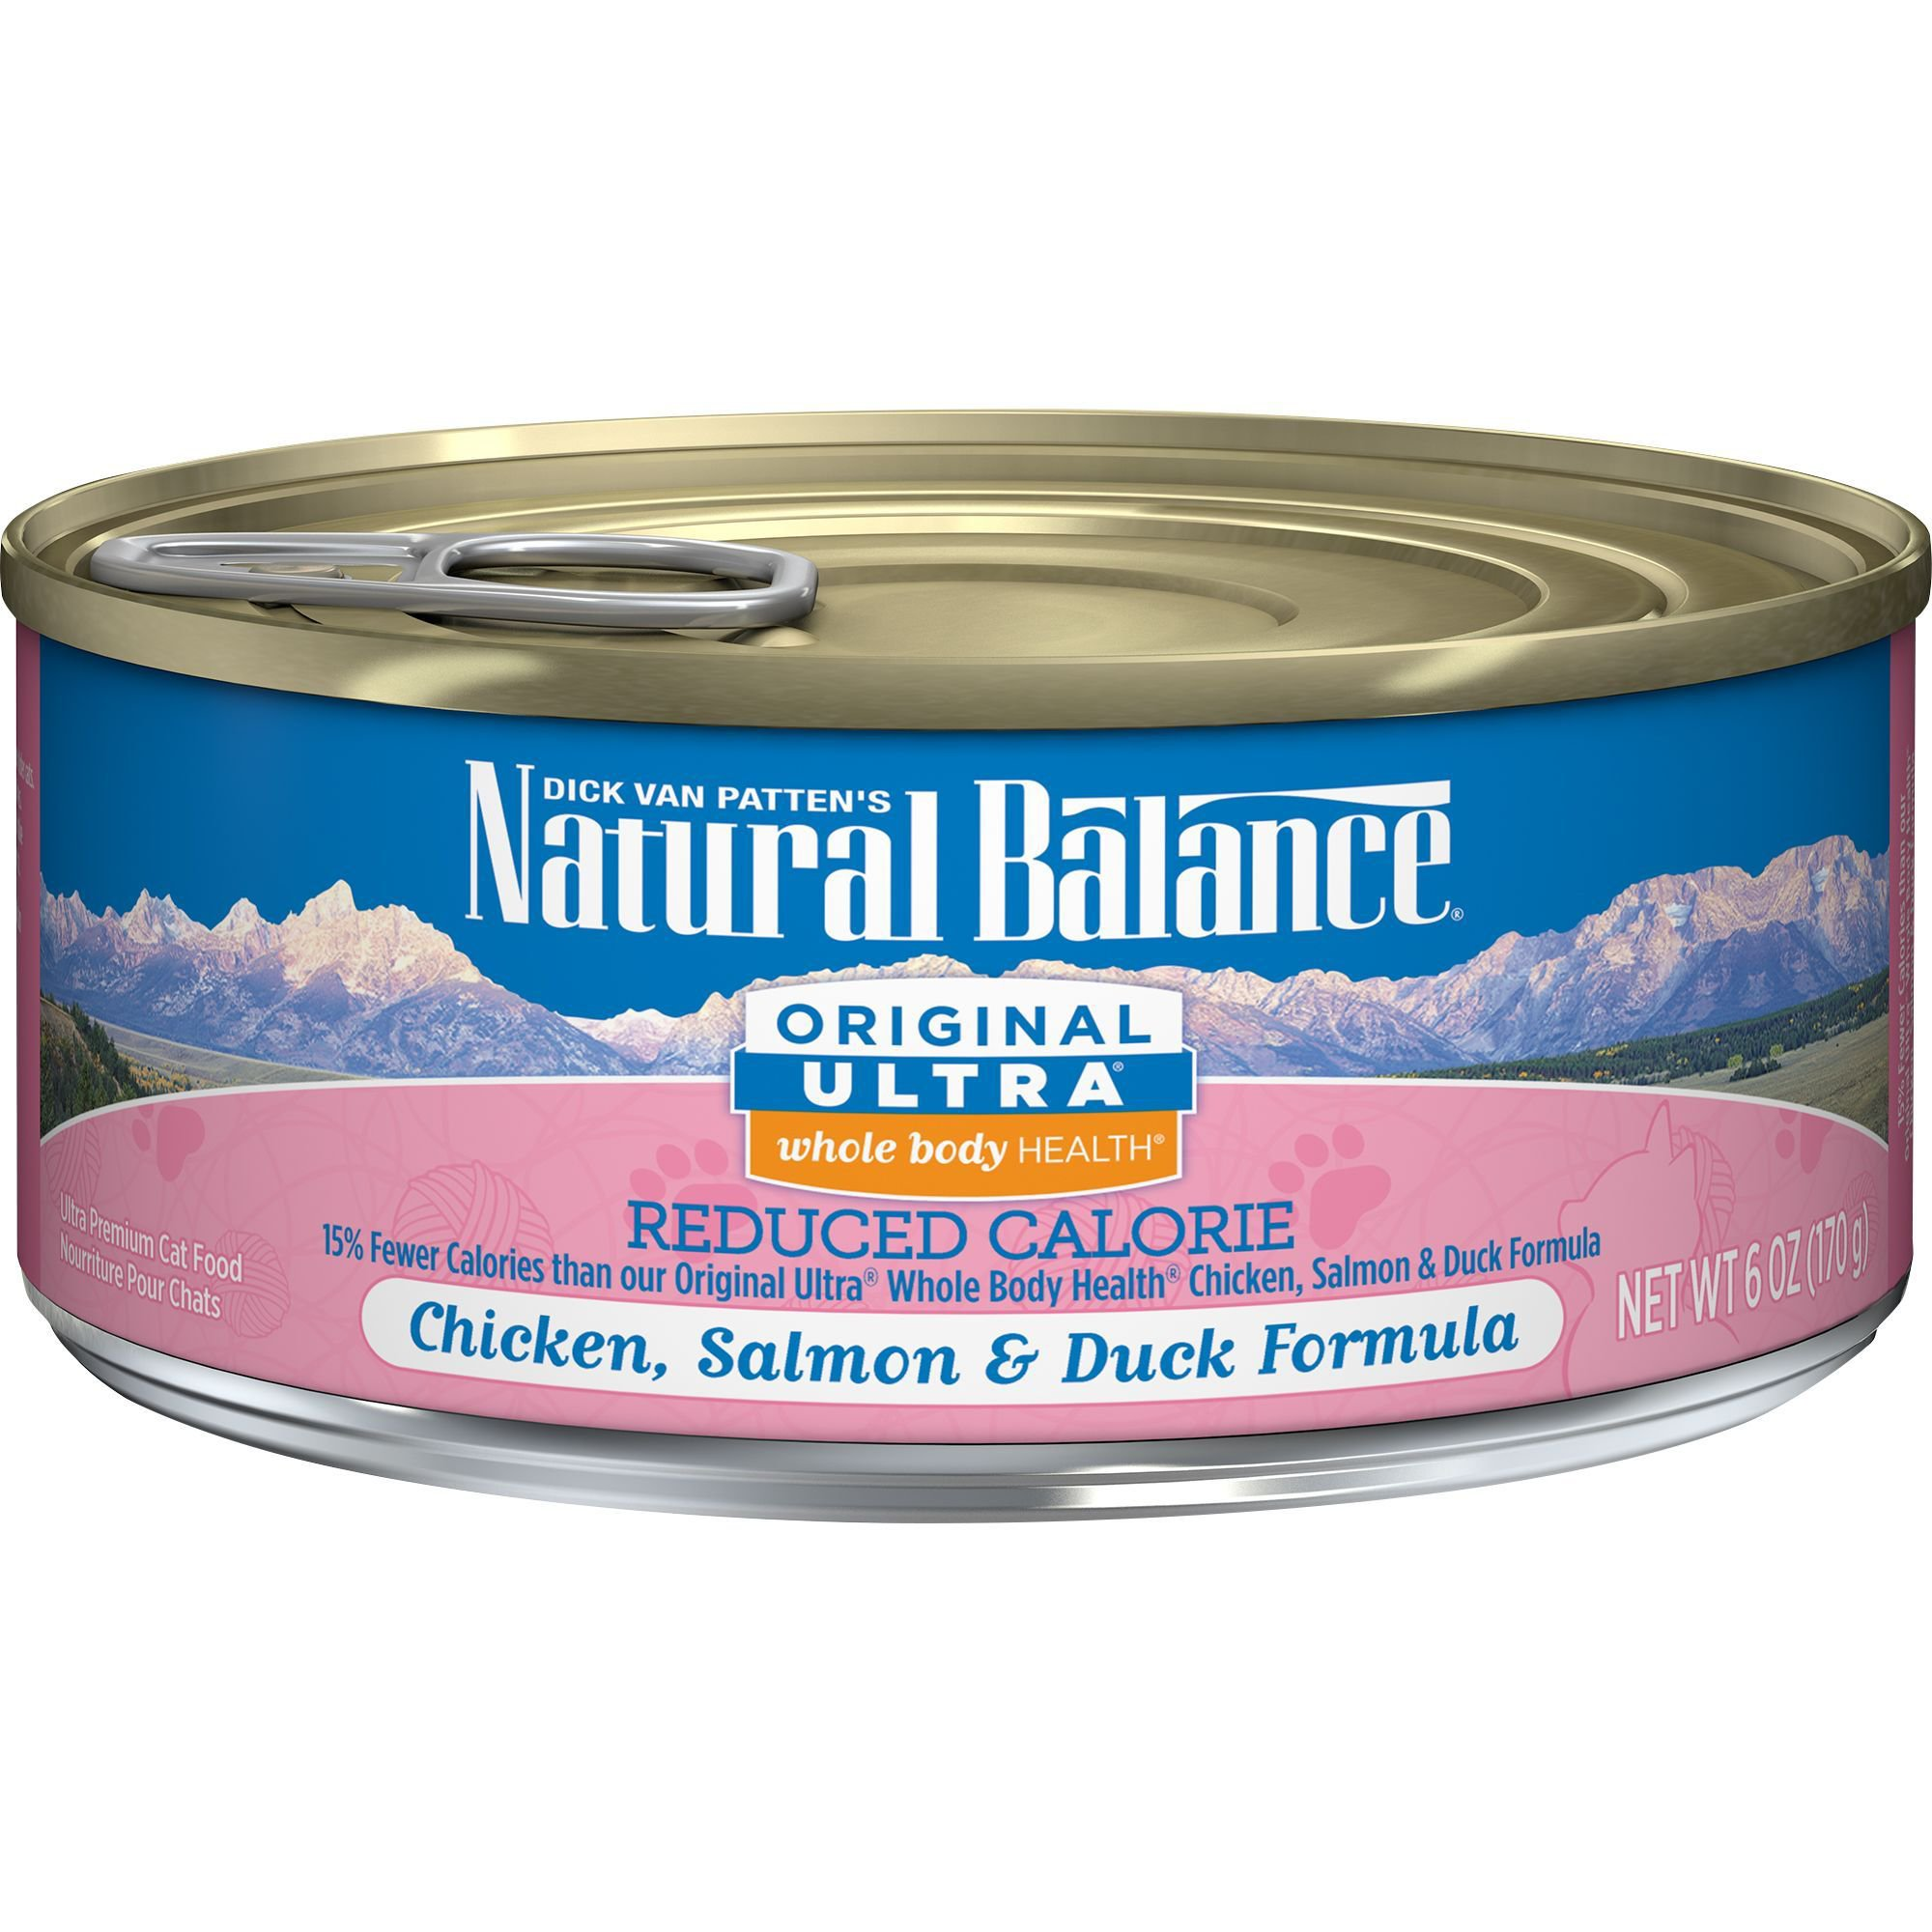 Natural Balance Reduced Calorie Canned Cat Food